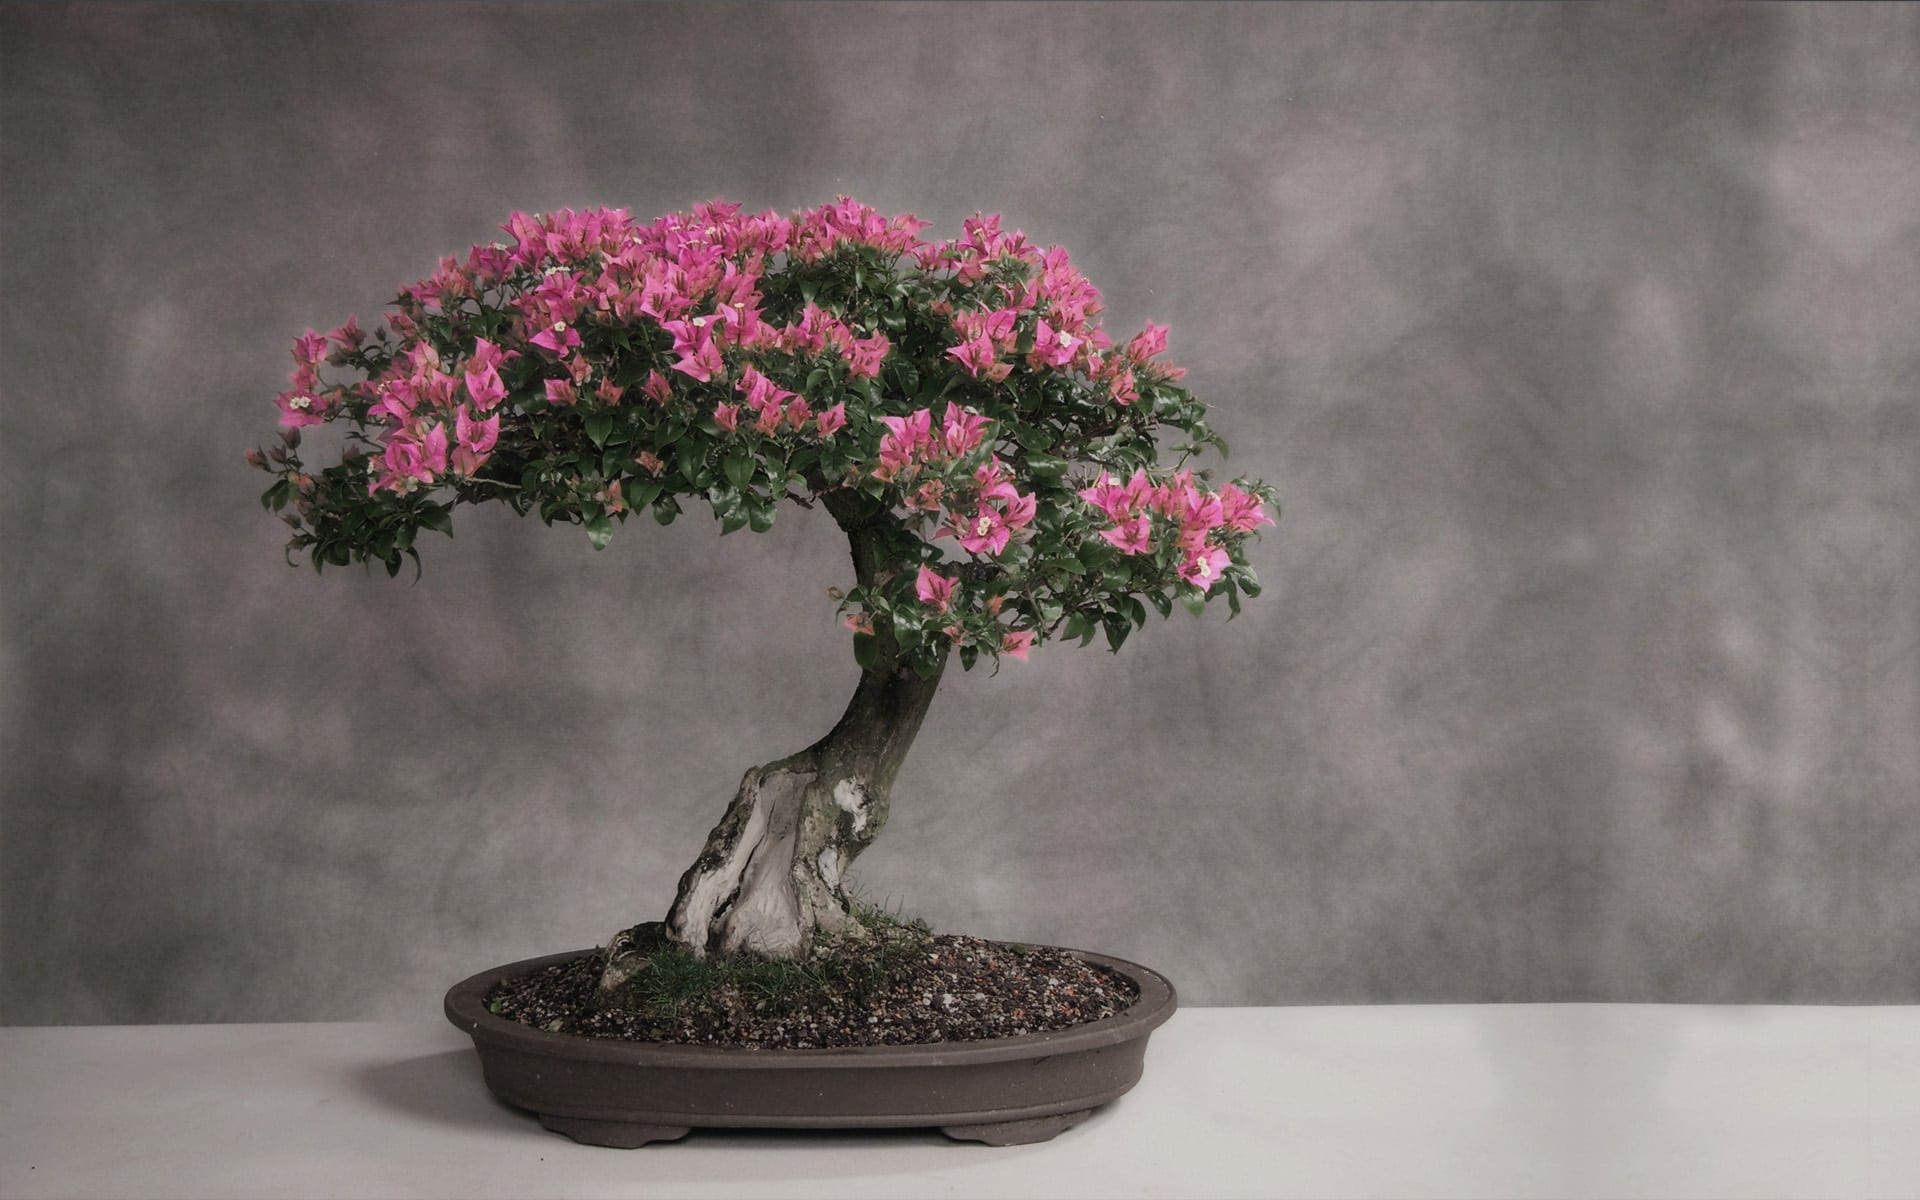 Fake Silk Blossom Trees Made In China Cheap Artificial Plastic Cherry Blossom Tree On Sale Buy Artificial Indoor Cherry Blossom Tree Cherry Blossom Bonsai Tree Mini Cherry Blossom Tree Product On Alibaba Com